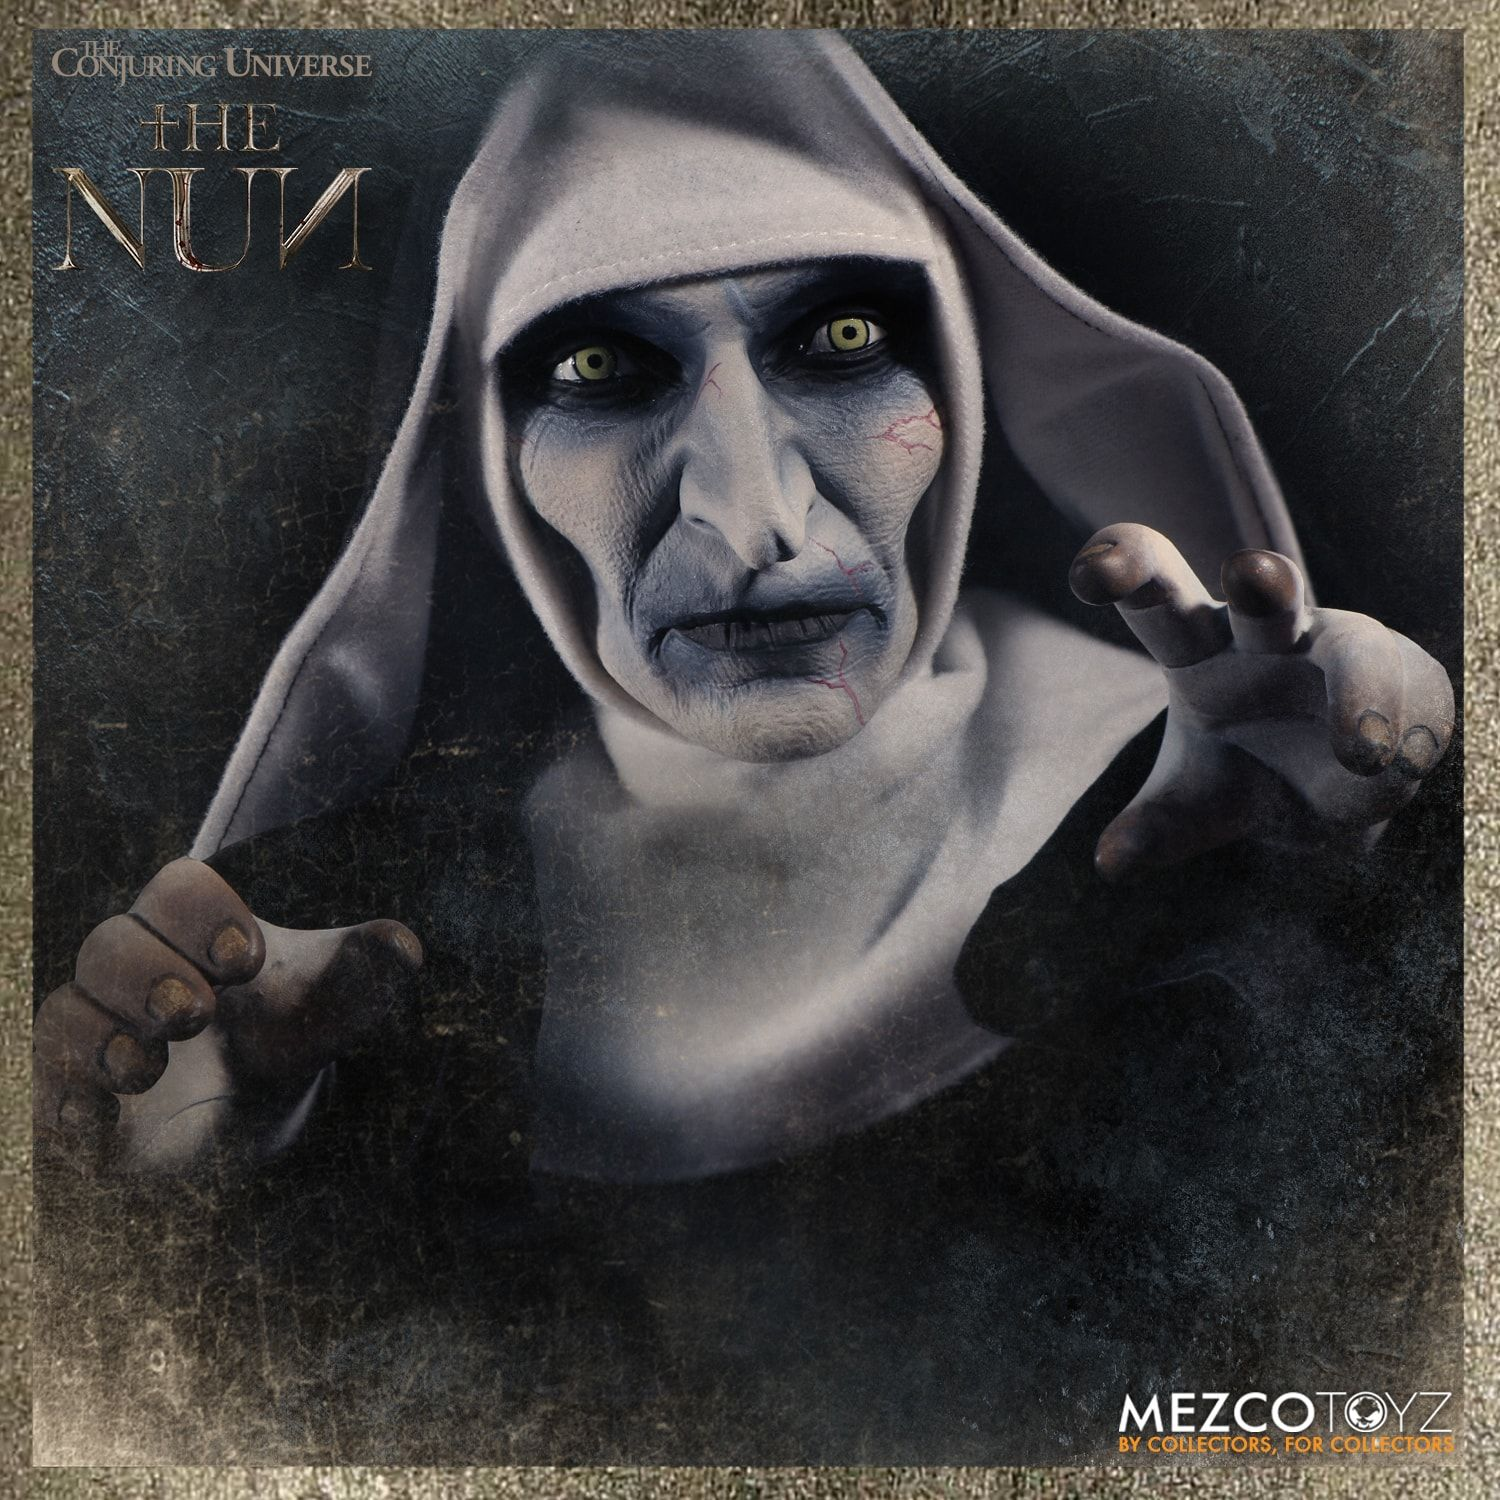 The Nun 6 - Mezco's THE NUN Doll May Be Scarier Than the Movie Itself